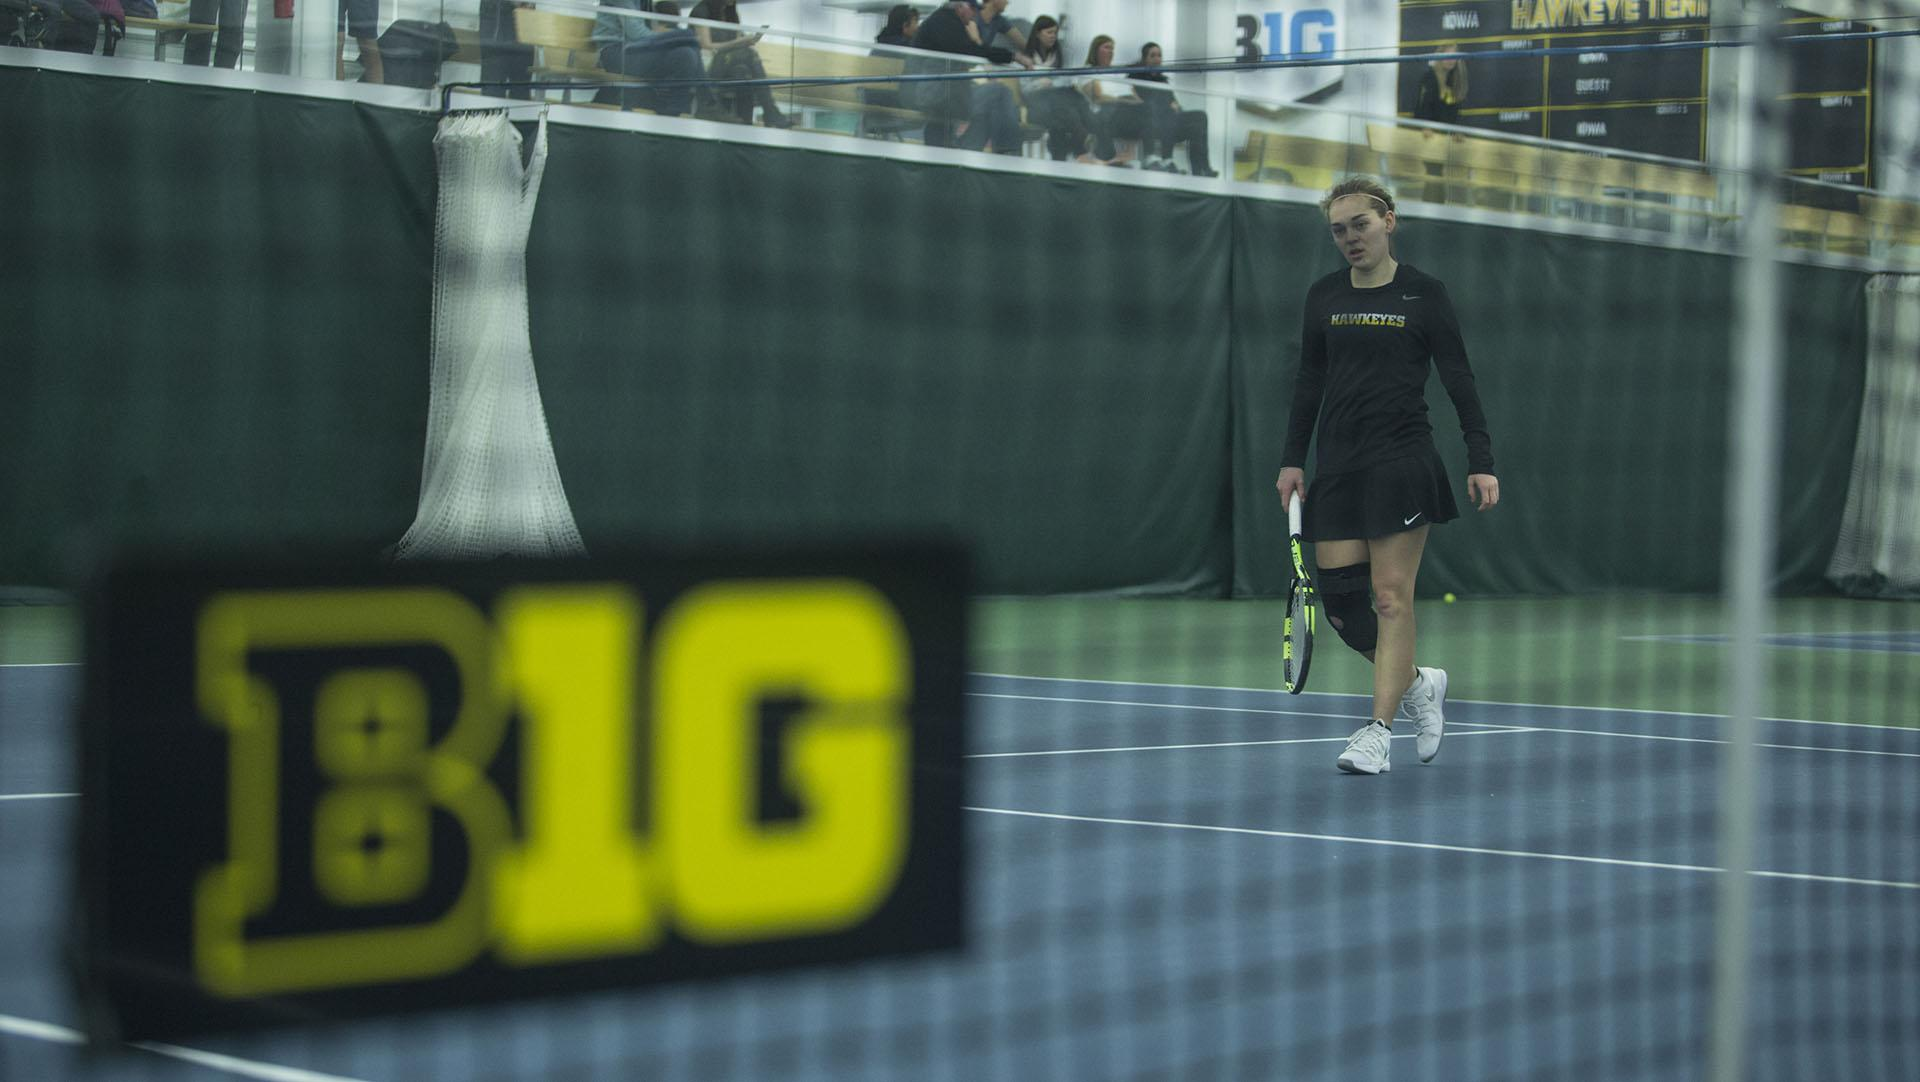 Women's tennis can't keep up, fall to Huskers, 4-0